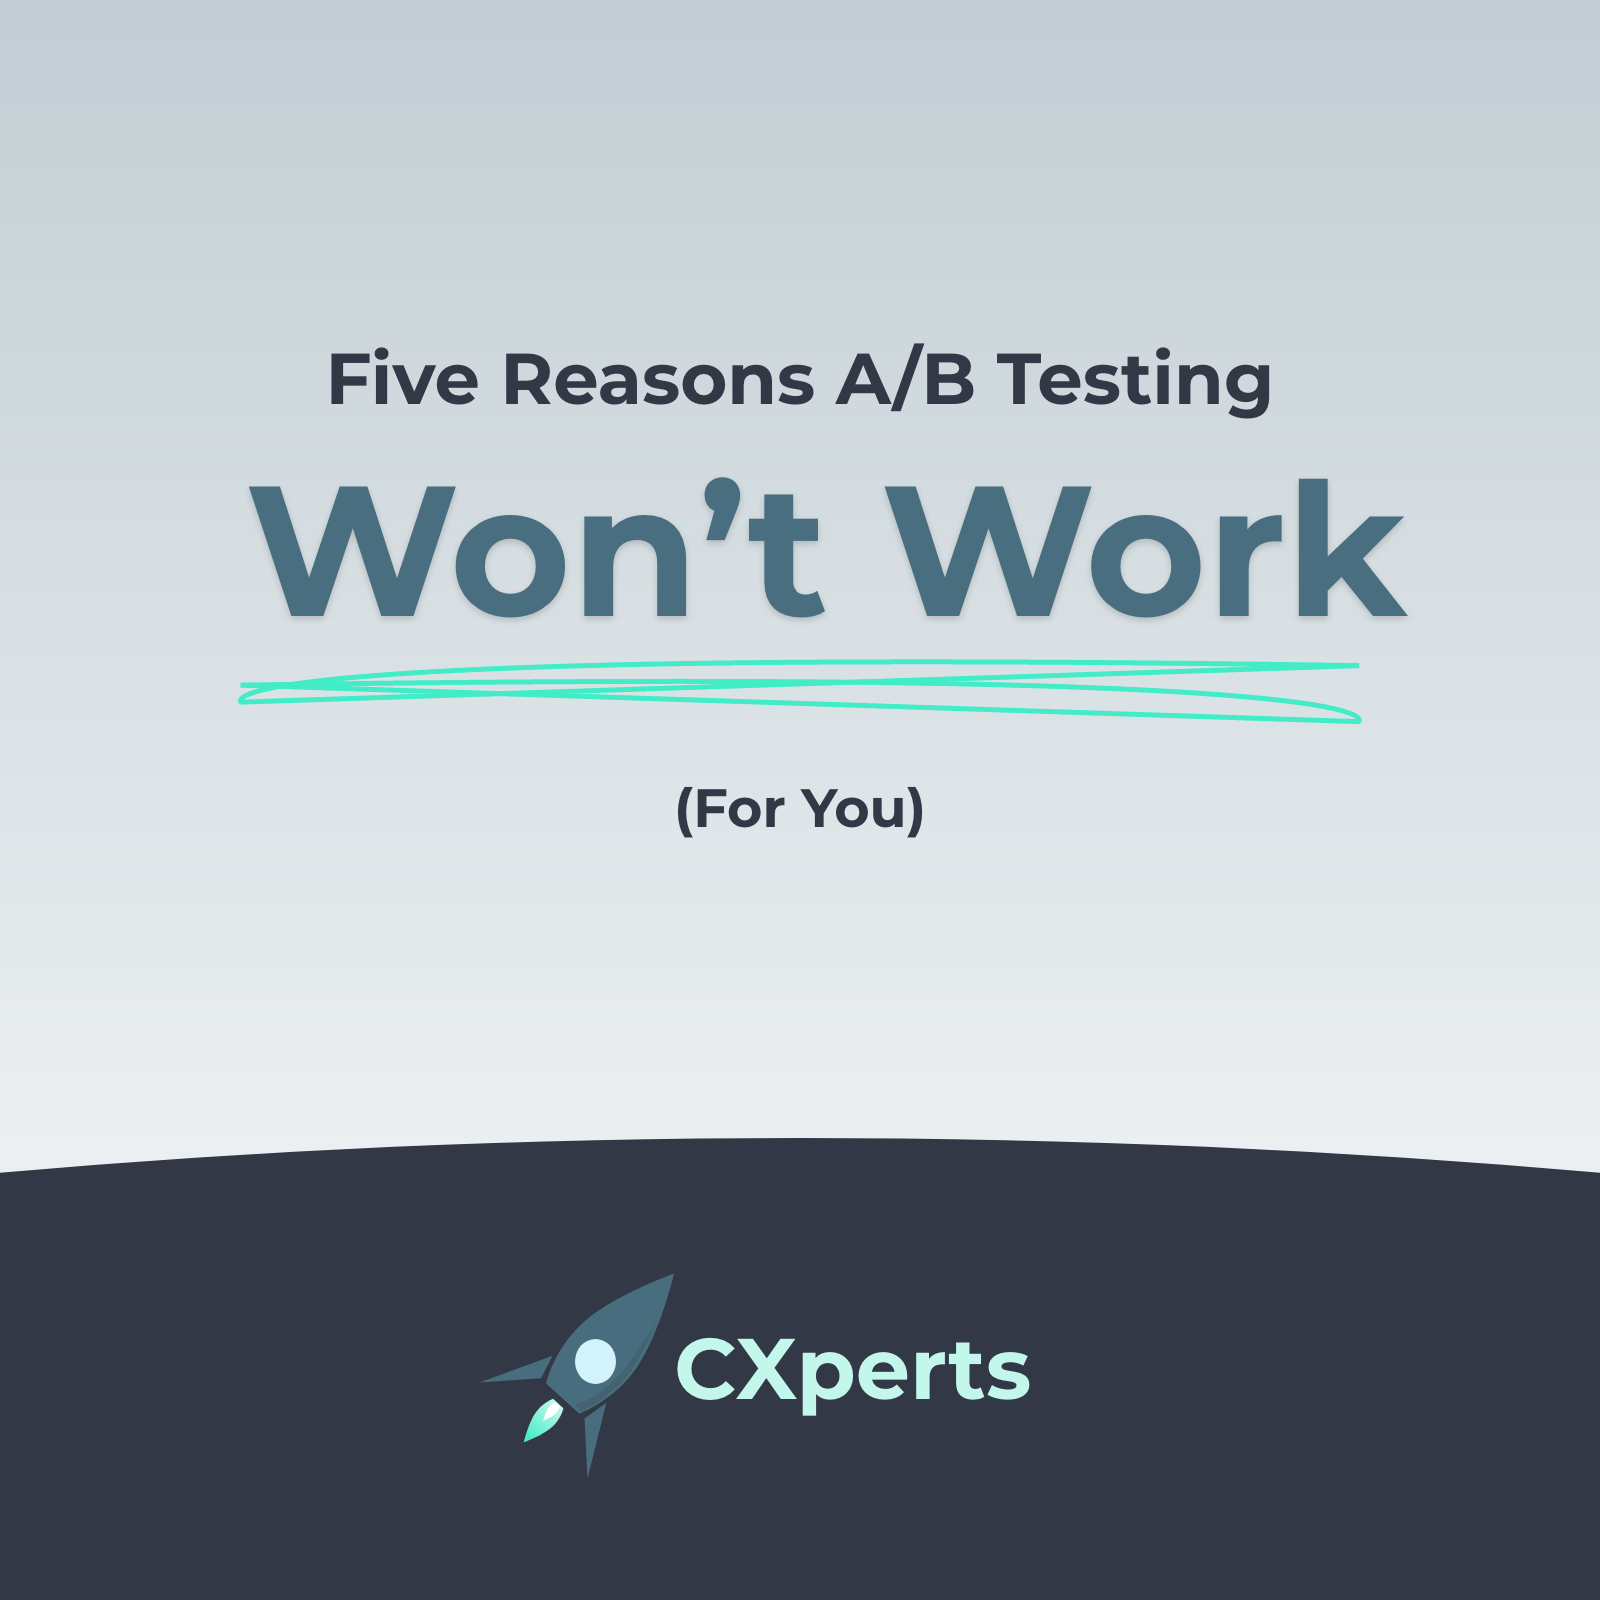 Learn 5 Reasons A/B Testing for CRO Won't Work For You | CXperts